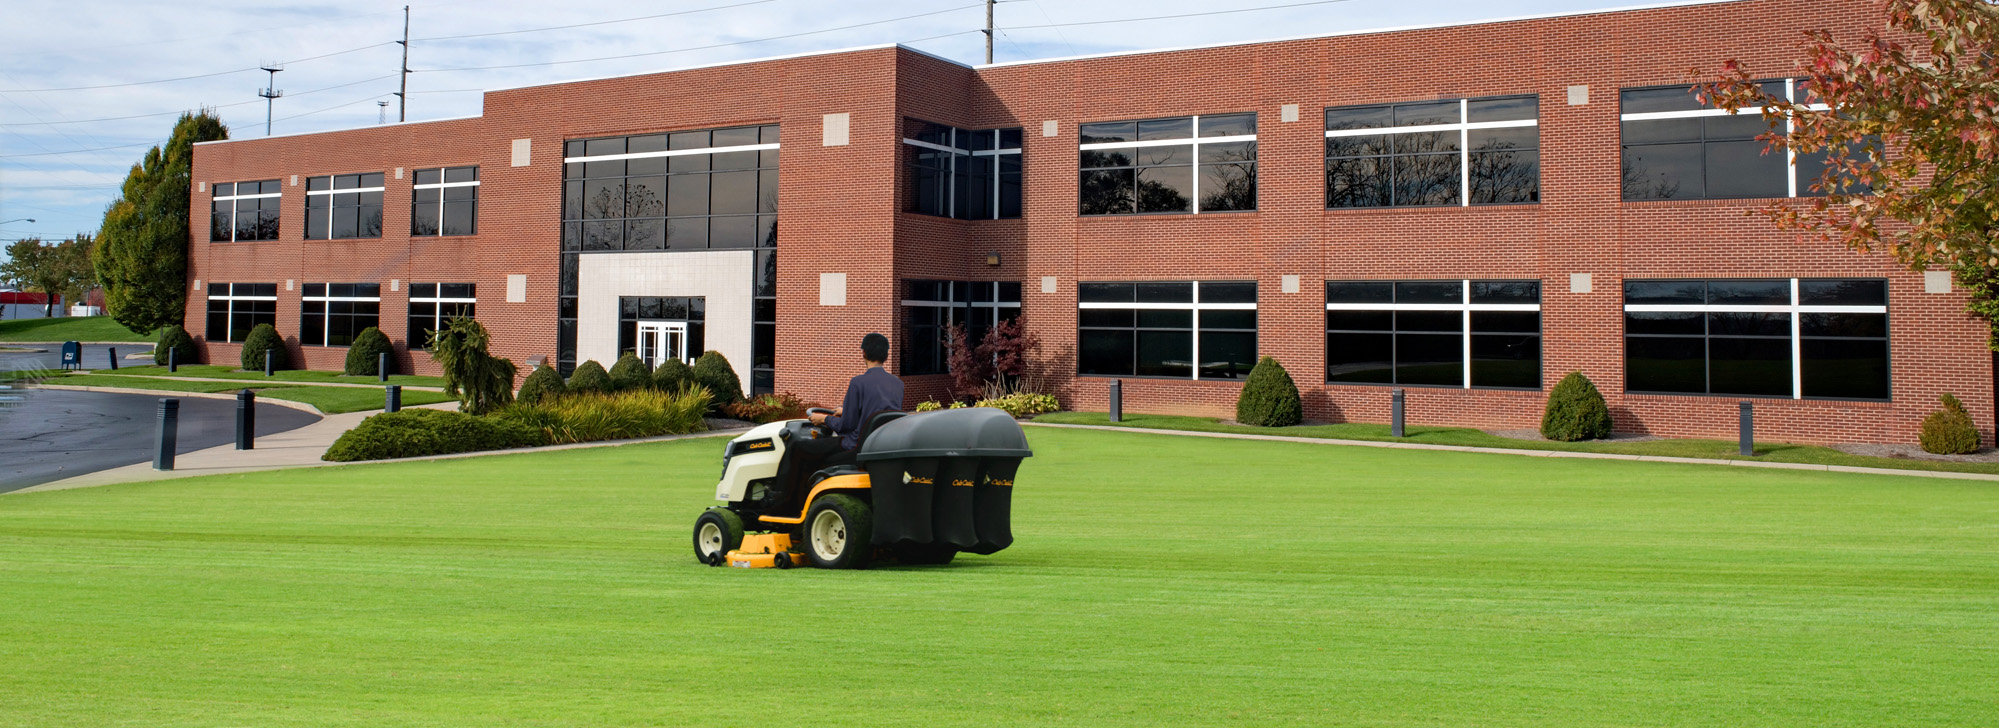 A man mowing a lawn on a commercial property